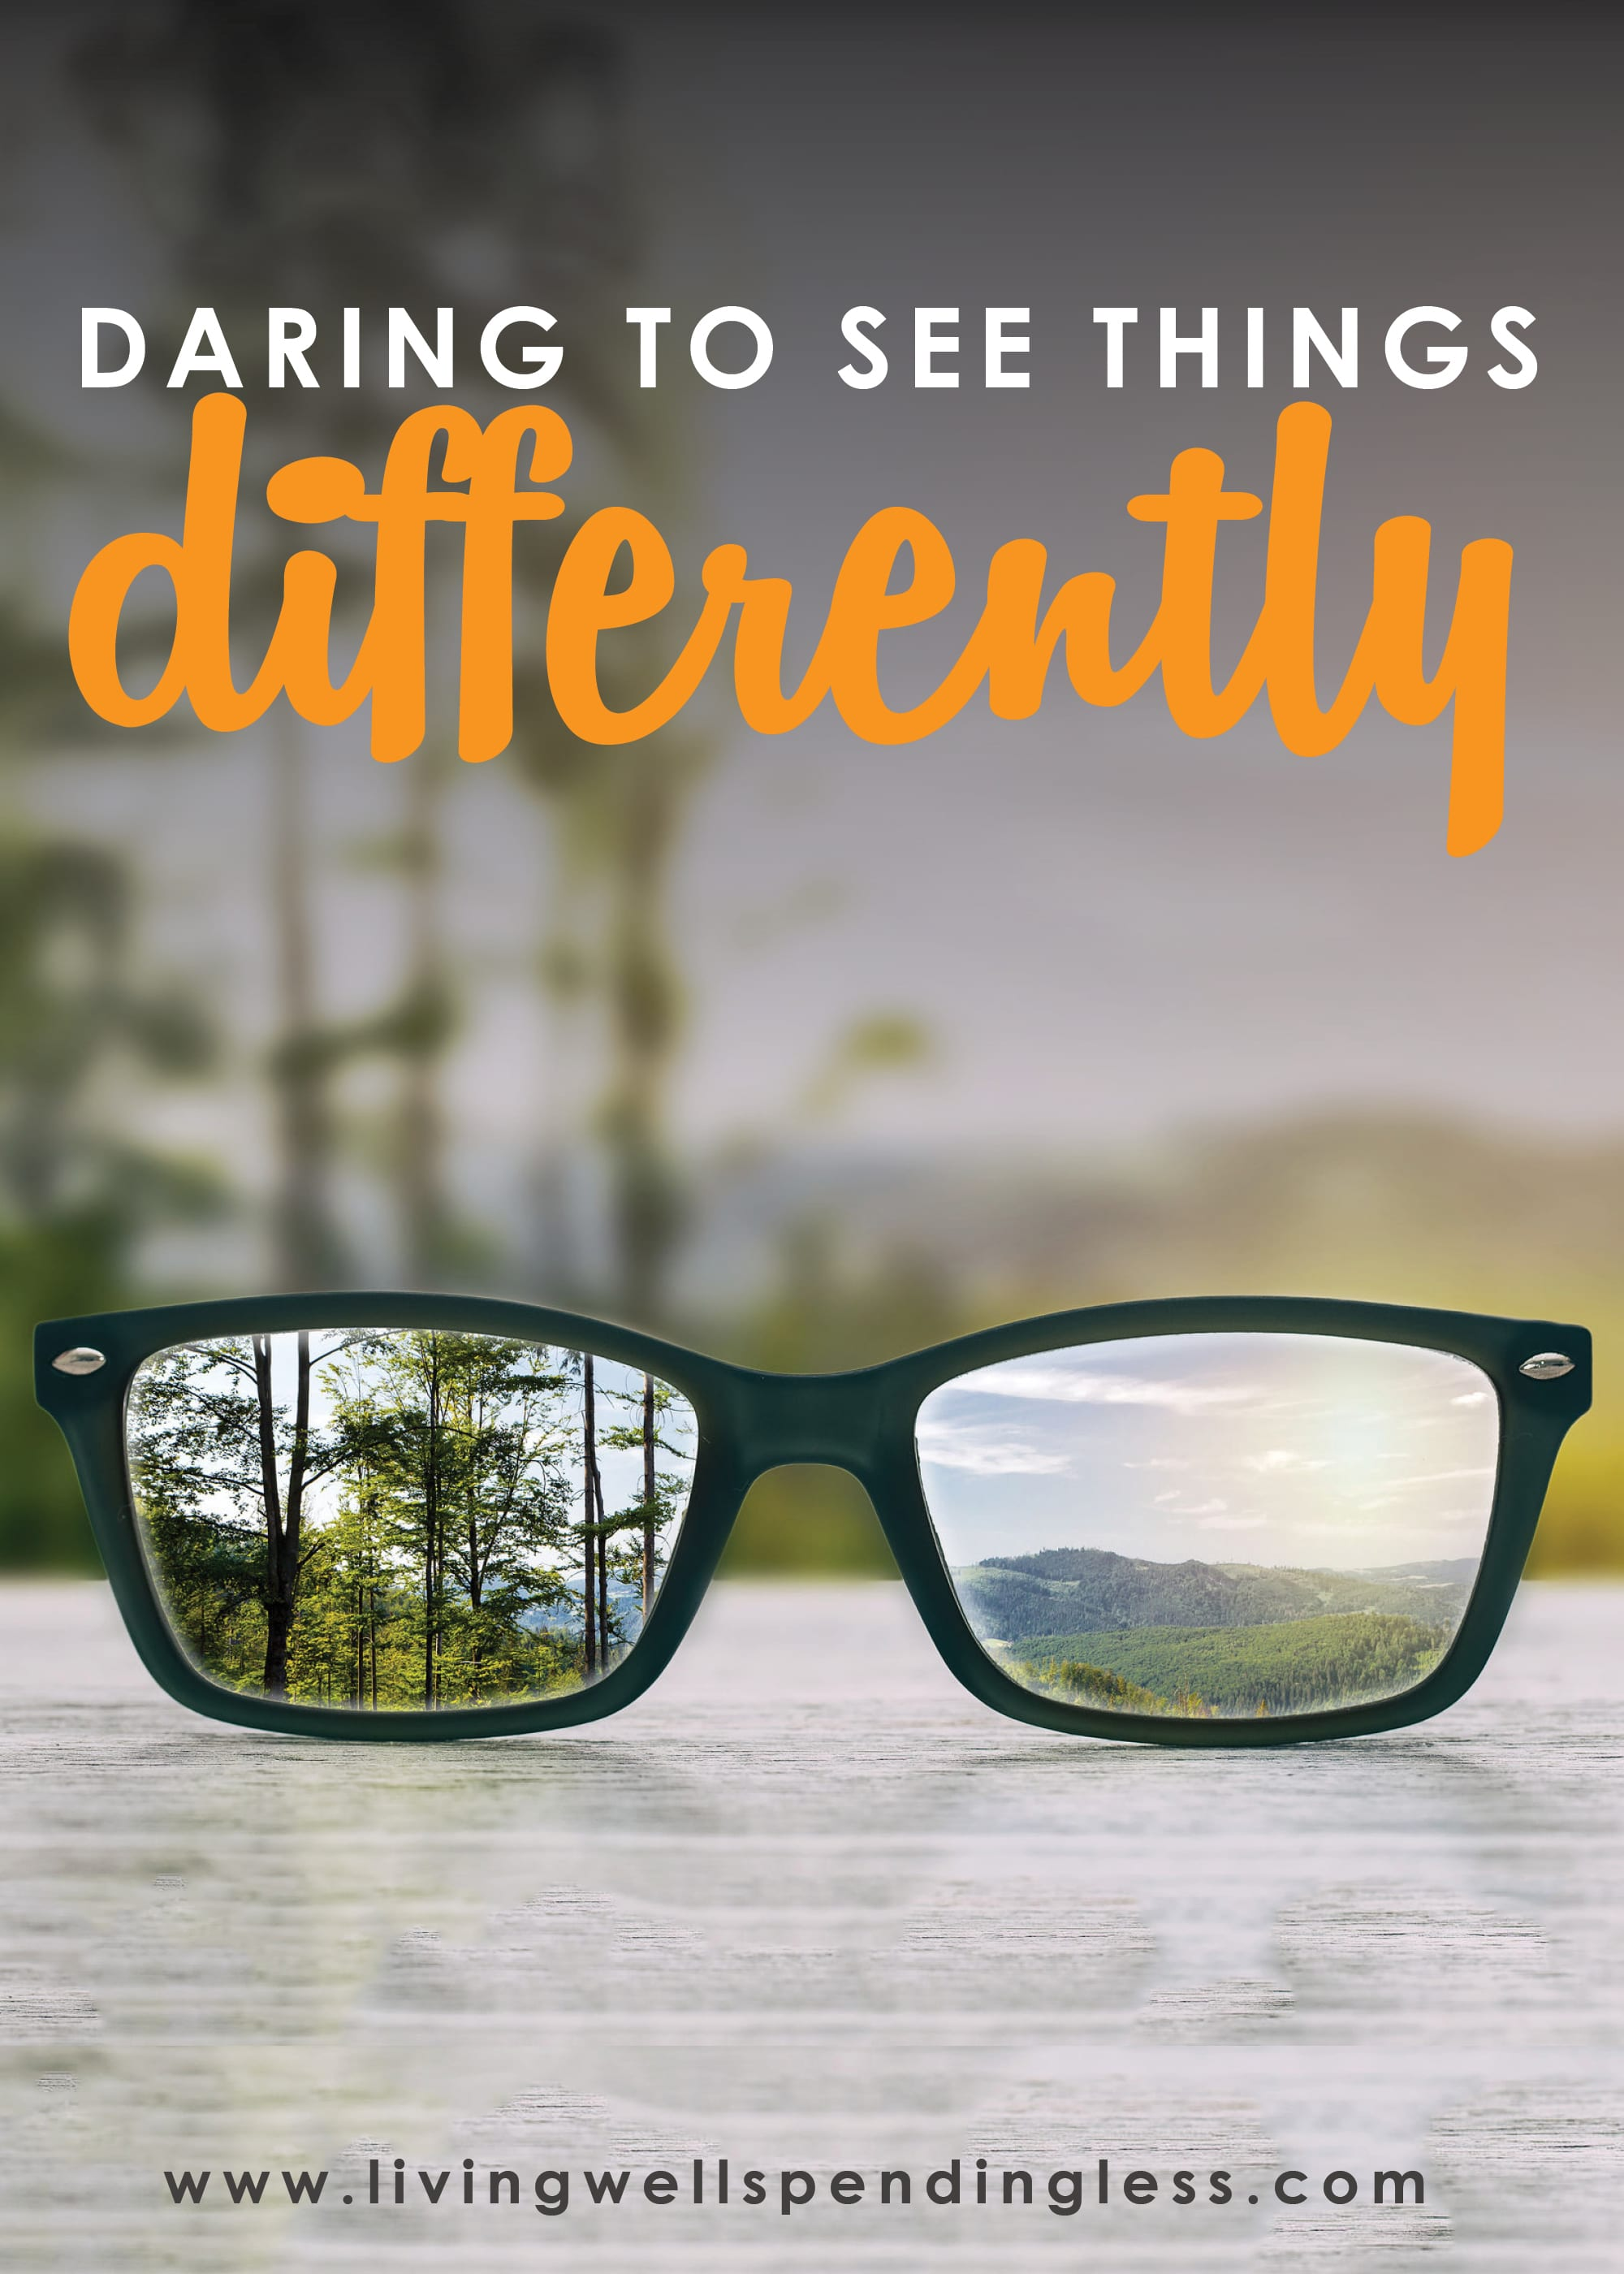 This week's podcast theme is all about daring to see things differently.